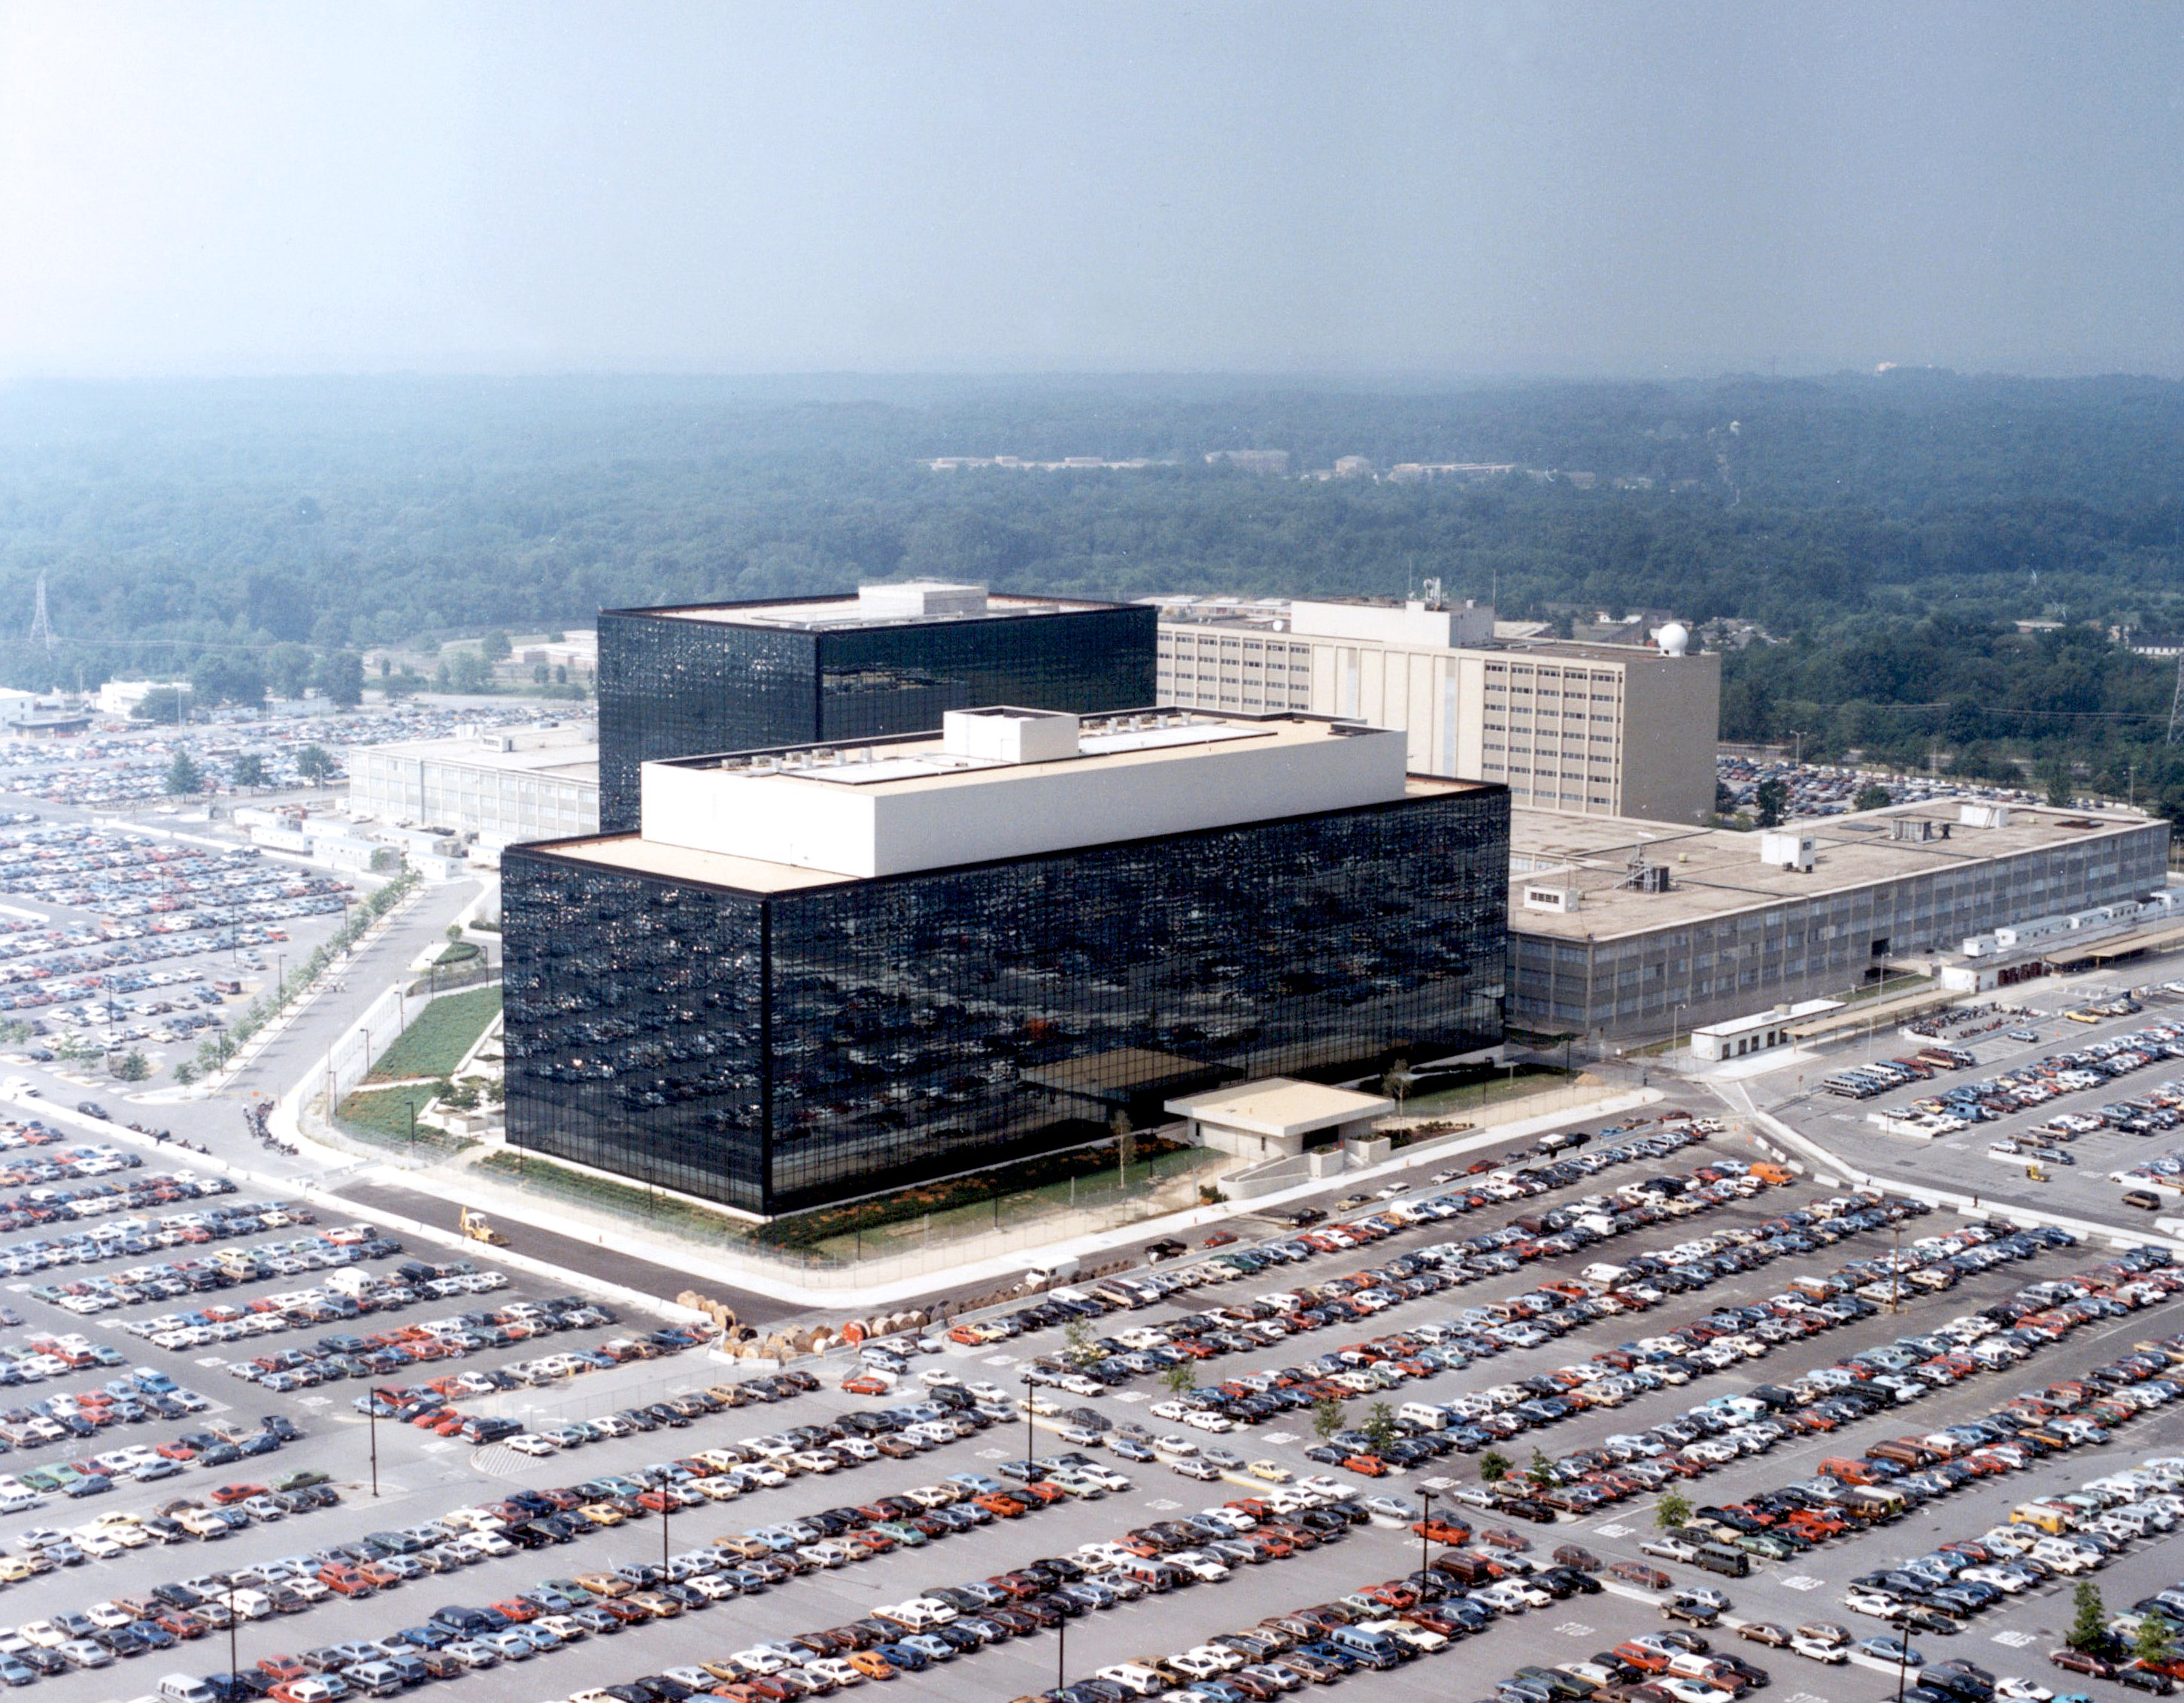 National_Security_Agency_headquarters%2C_Fort_Meade%2C_Maryland.jpg